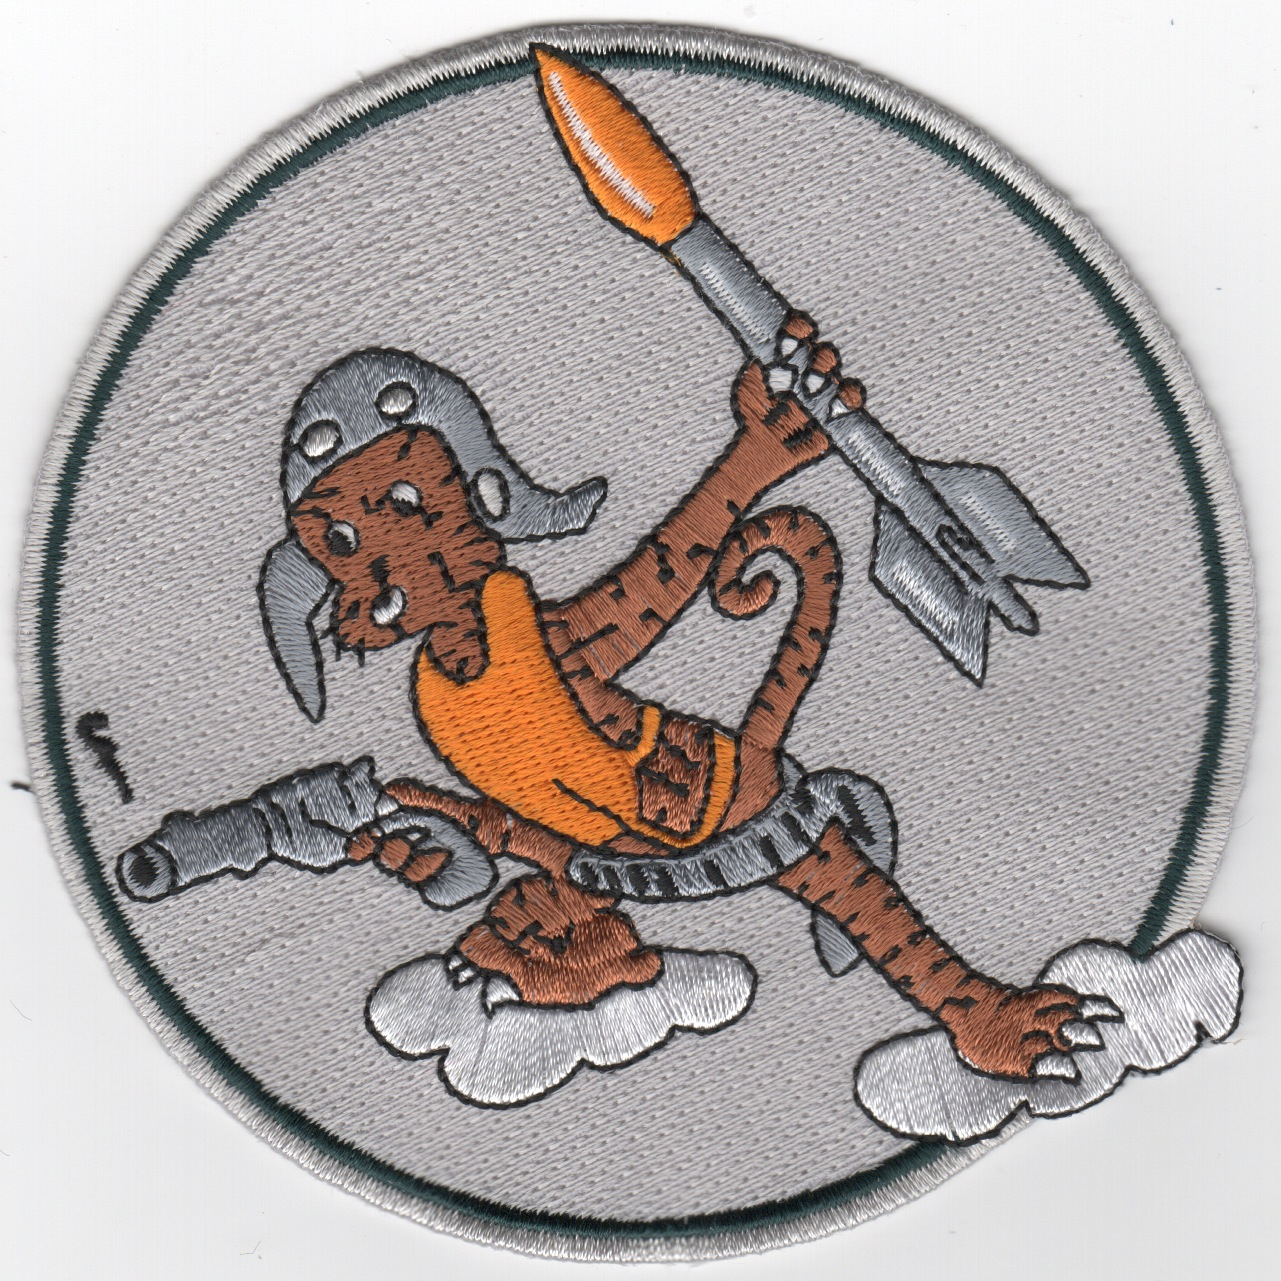 VFA-81 'Historical' Squadron Patch